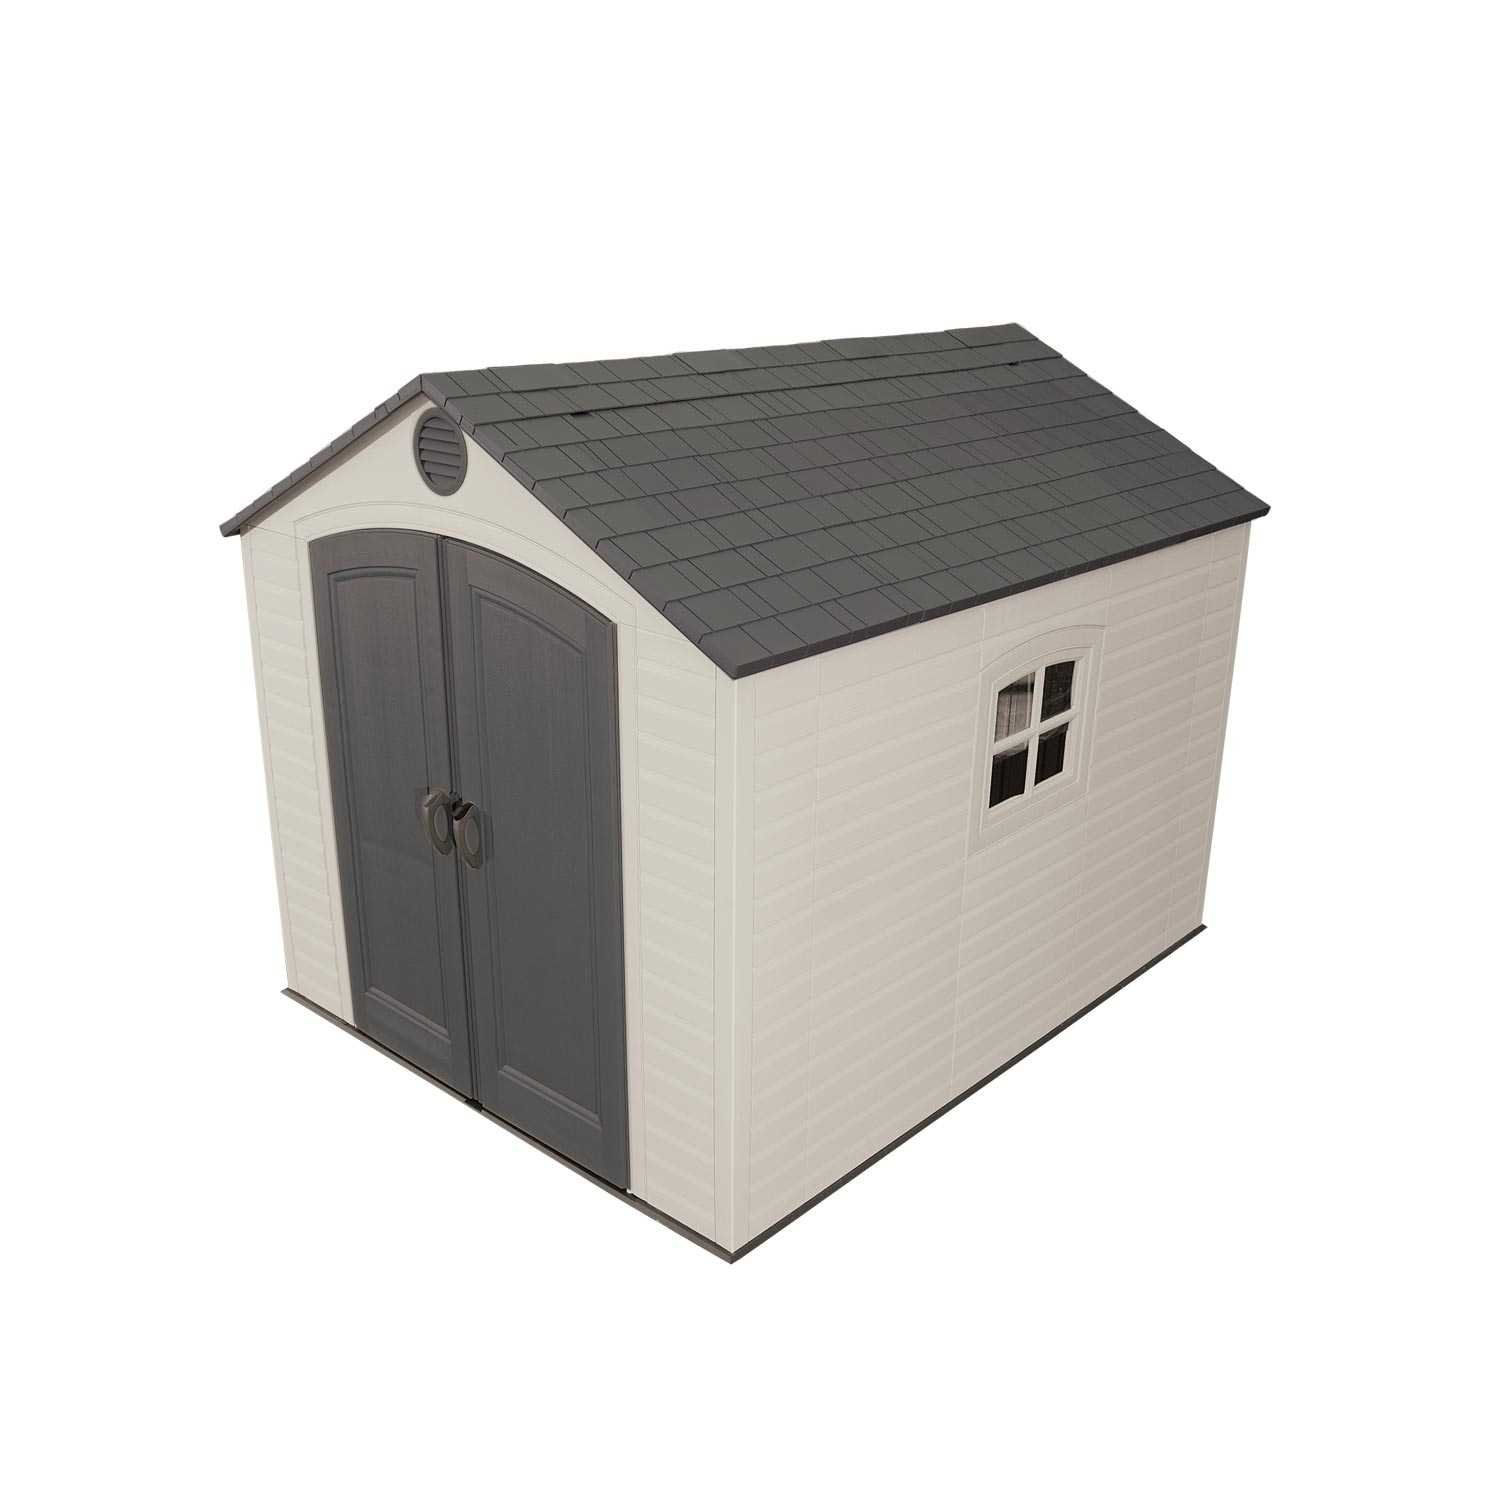 Amazon.com : Lifetime 6405 Outdoor Storage Shed with Window ...